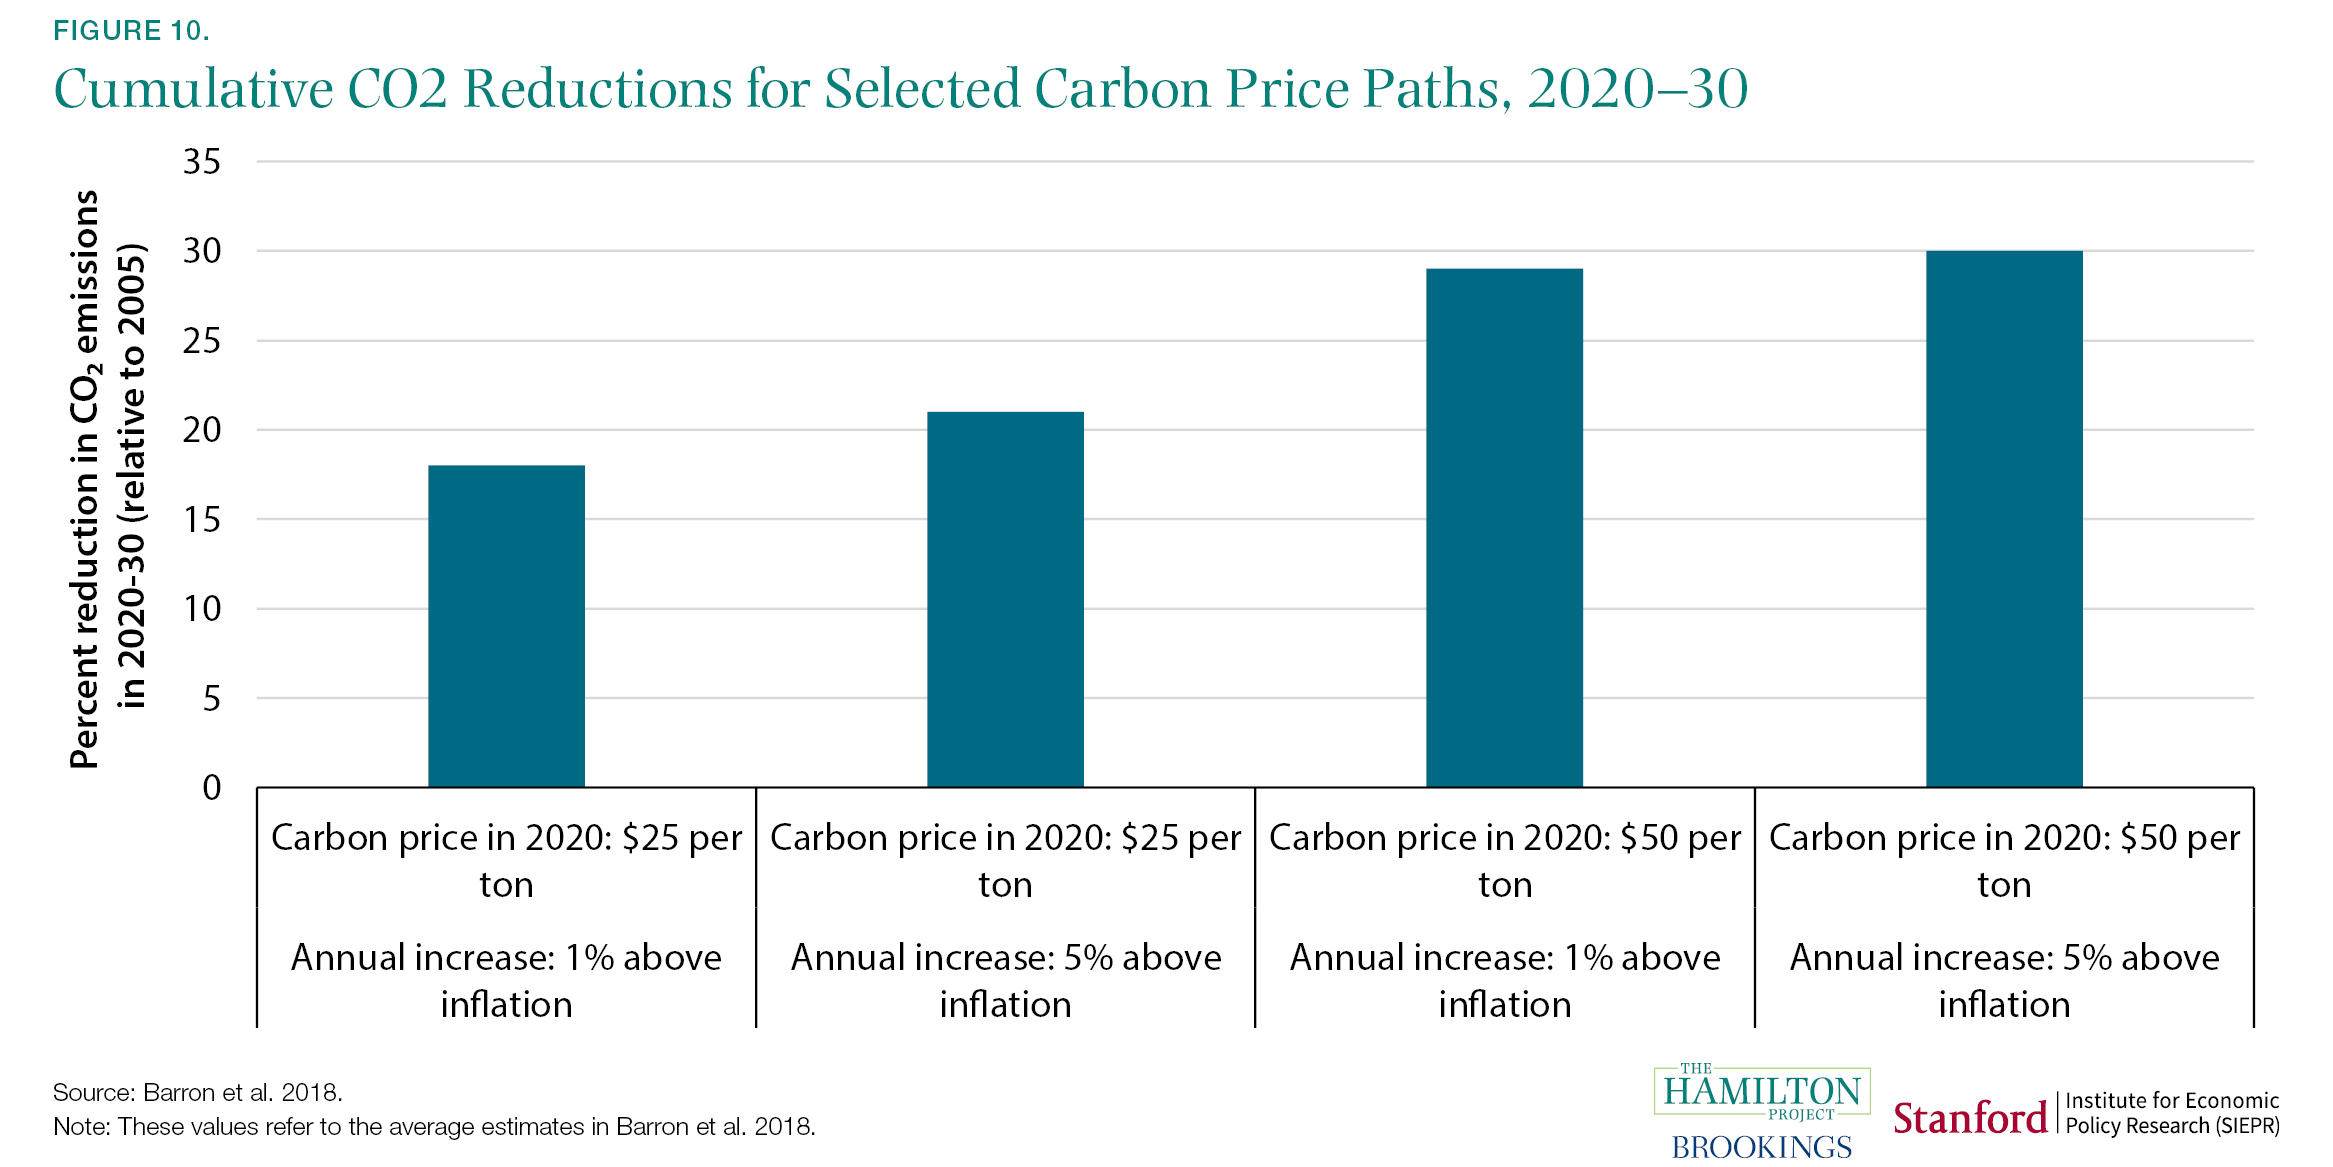 Cumulative CO2 Reductions for Selected Carbon Price Paths, 2020-30